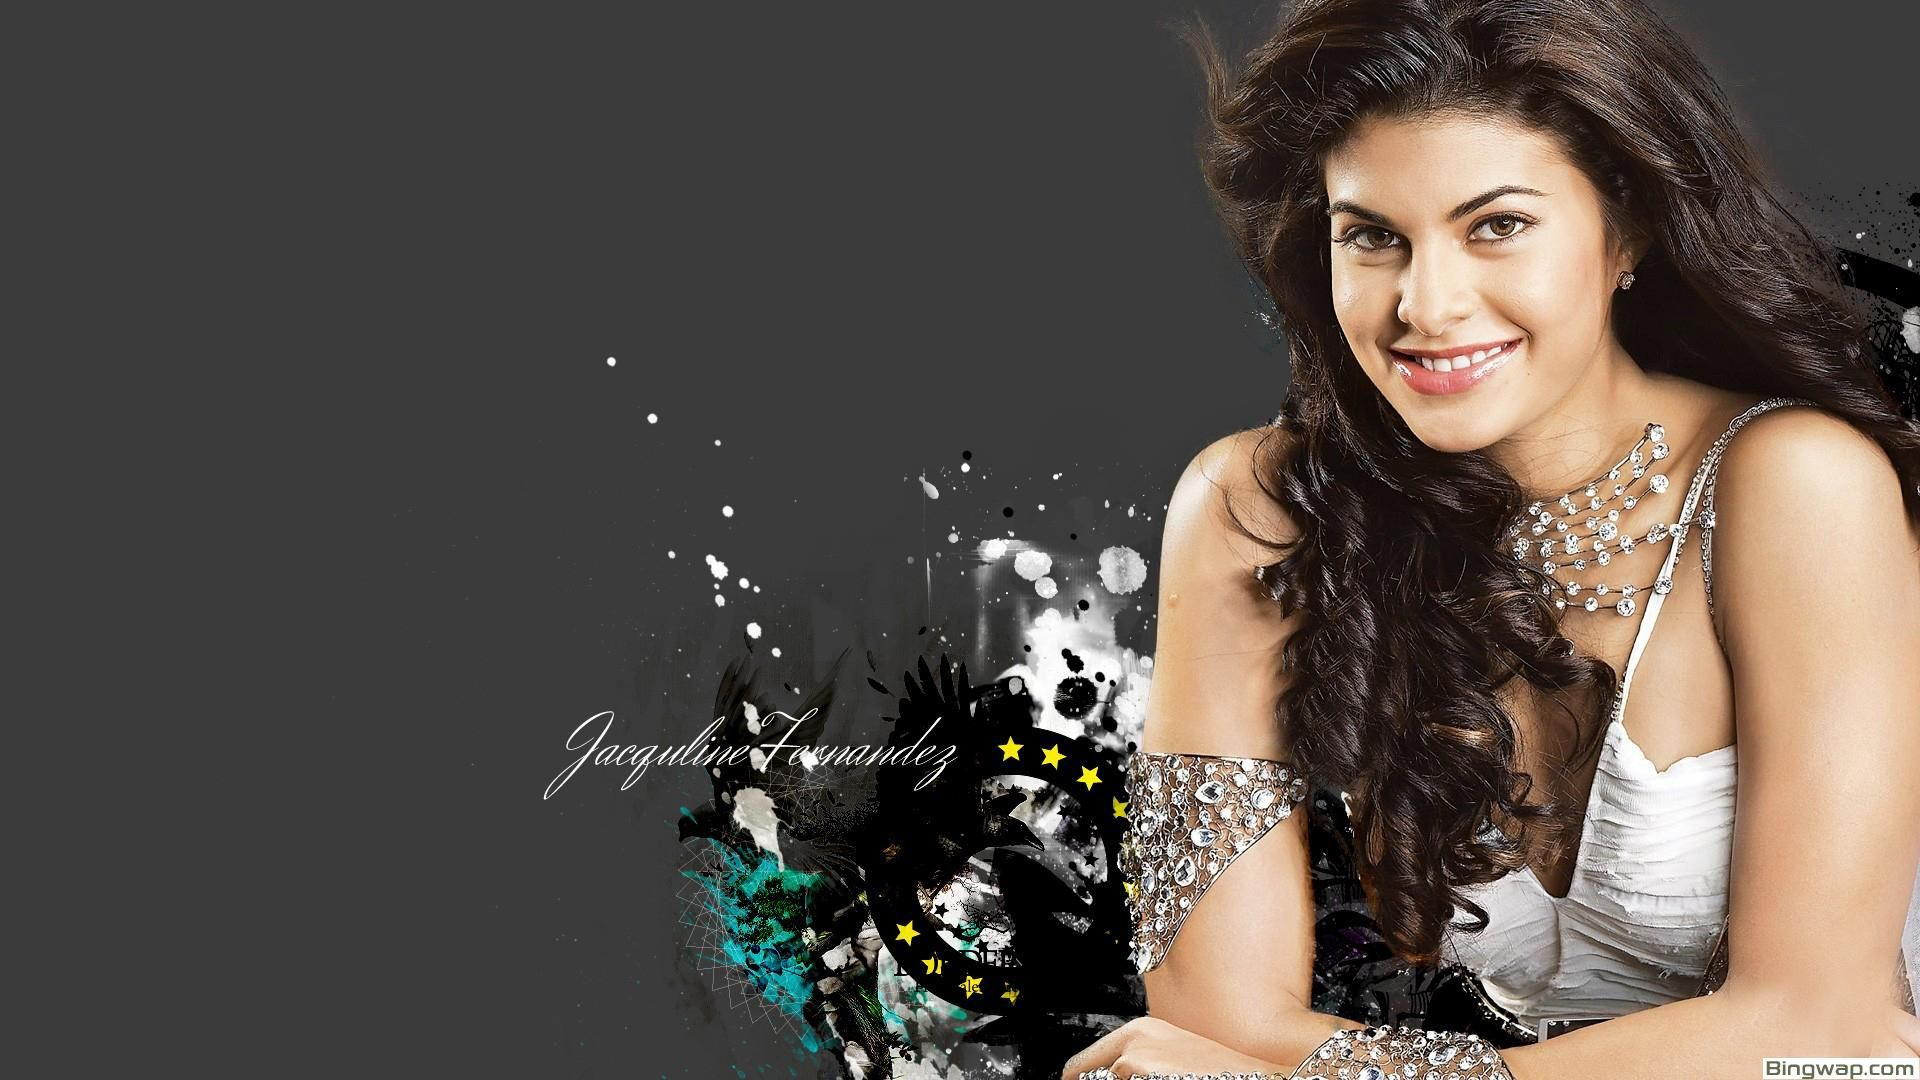 Free Download Full Hd Wallpaper Jacqueline Fernandez: Download Jacqueline Fernandez